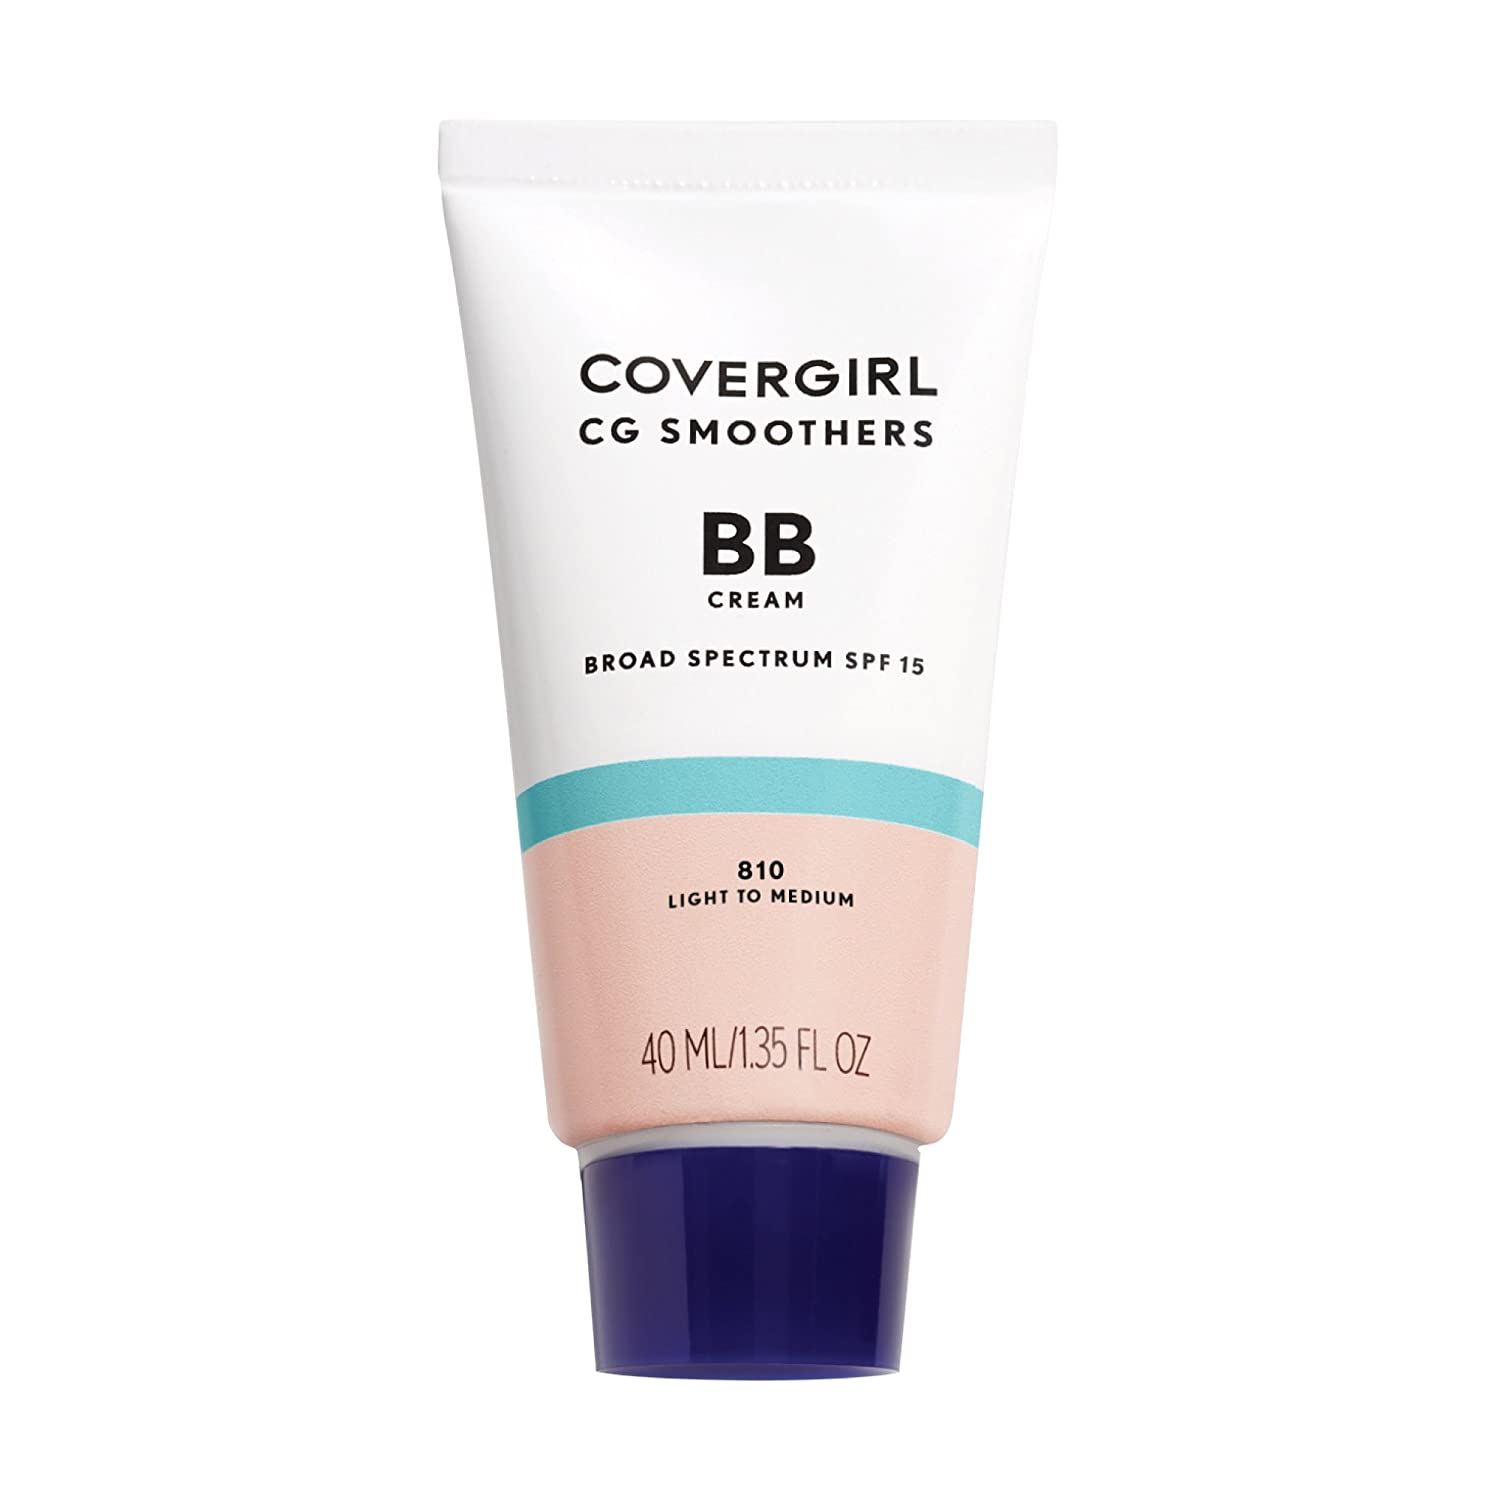 COVERGIRL - Smoothers BB Cream Tinted Moisturizer - Packaging May Vary Coty